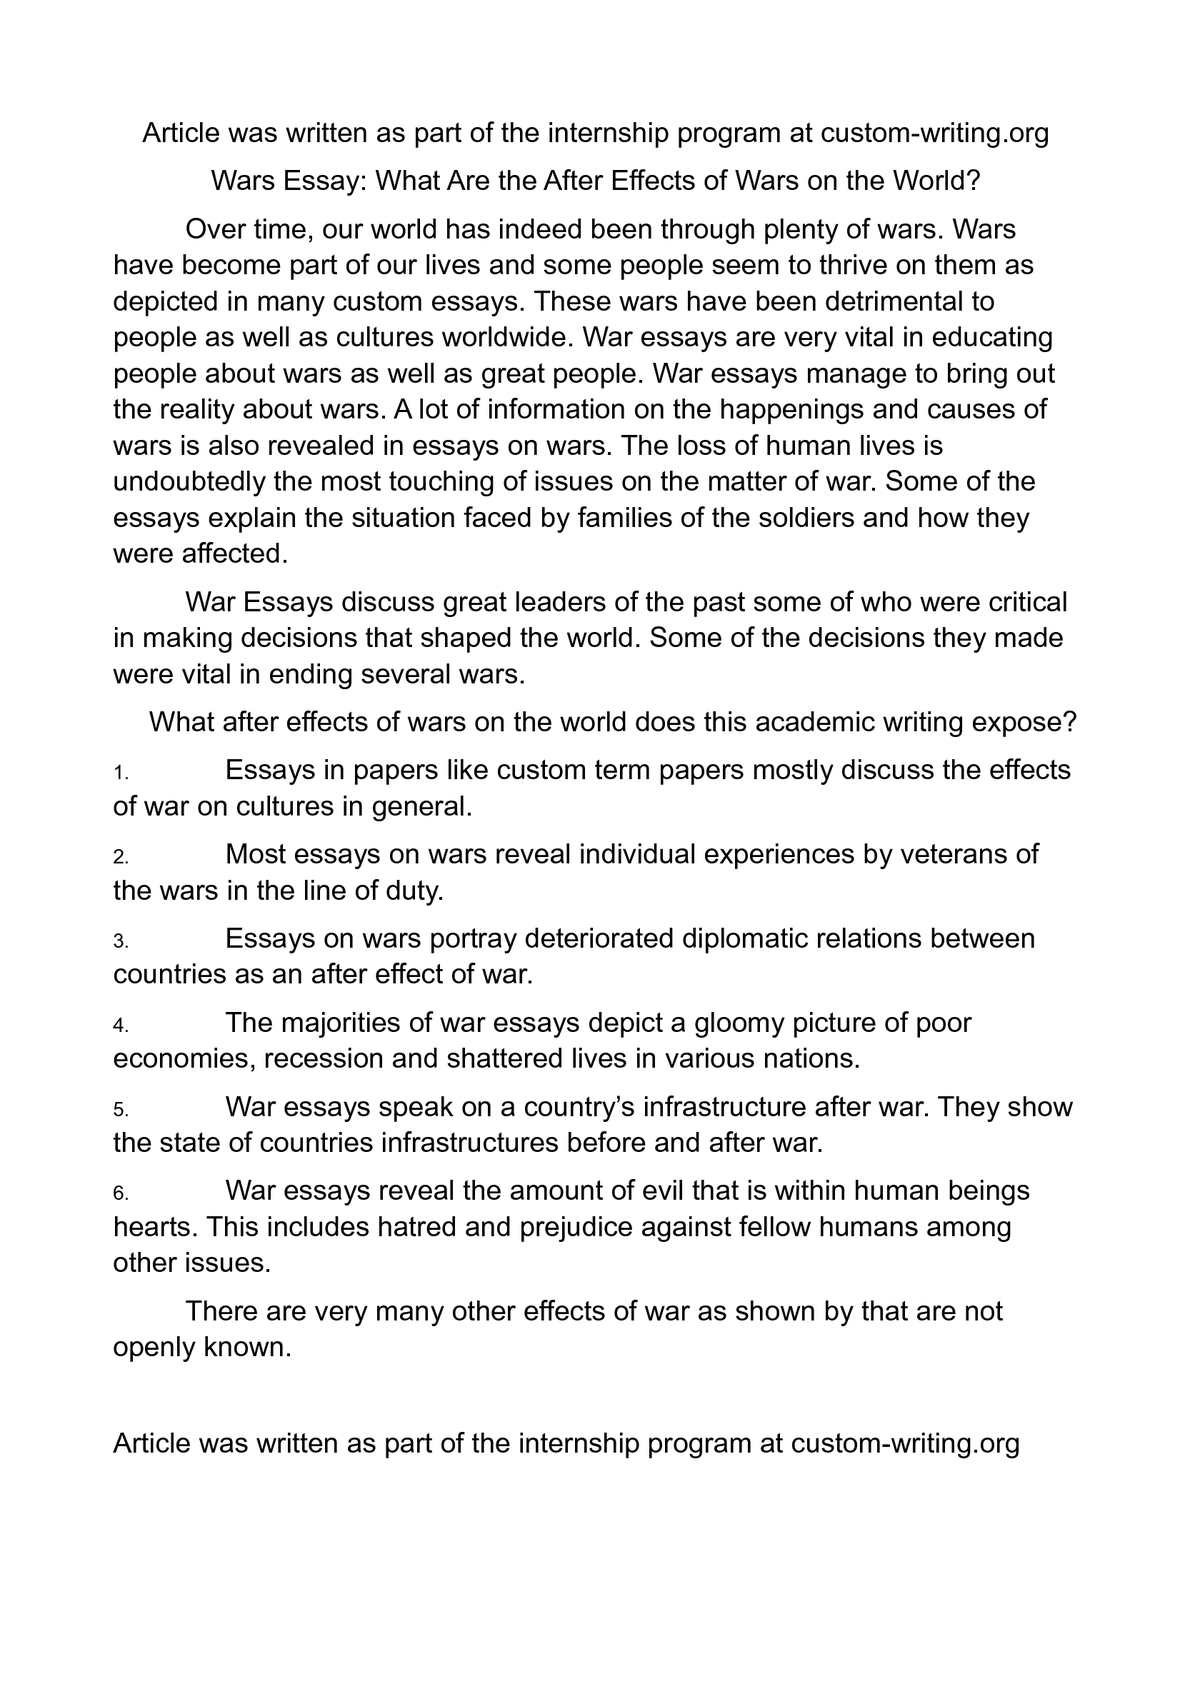 war essay calam atilde copy o wars essay what are the after  calam atilde copy o wars essay what are the after effects of wars on the world